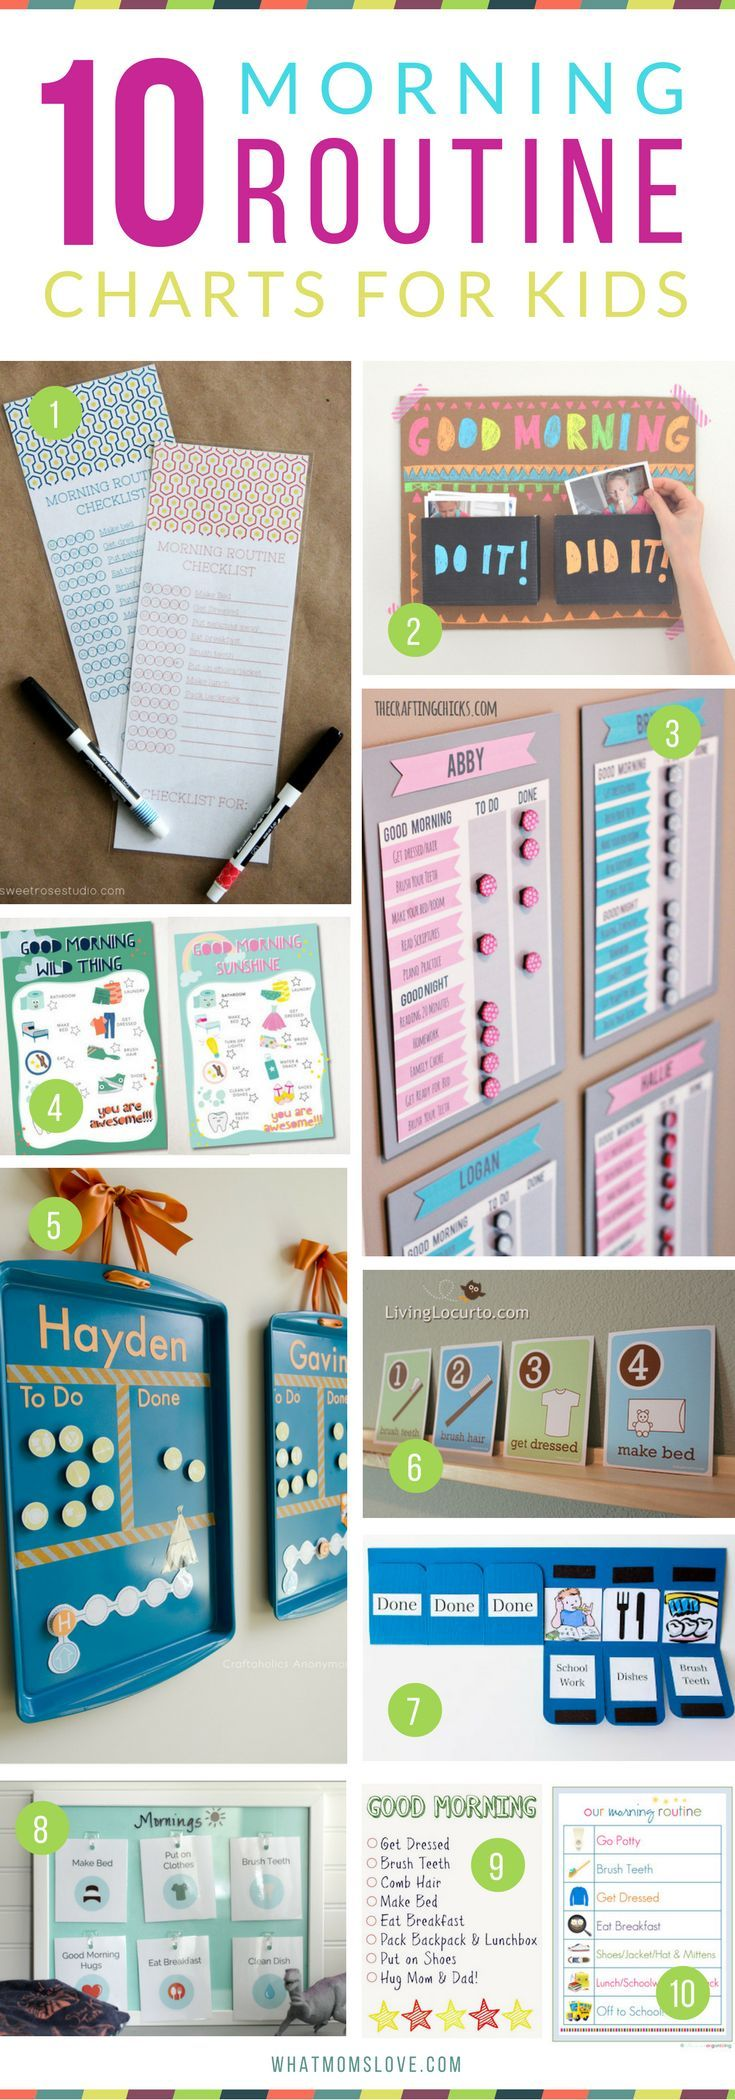 Morning Routine Charts For Kids   Hacks, Tips and Tricks for Organized, Stress-Free Mornings with kids - perfect for back to school!